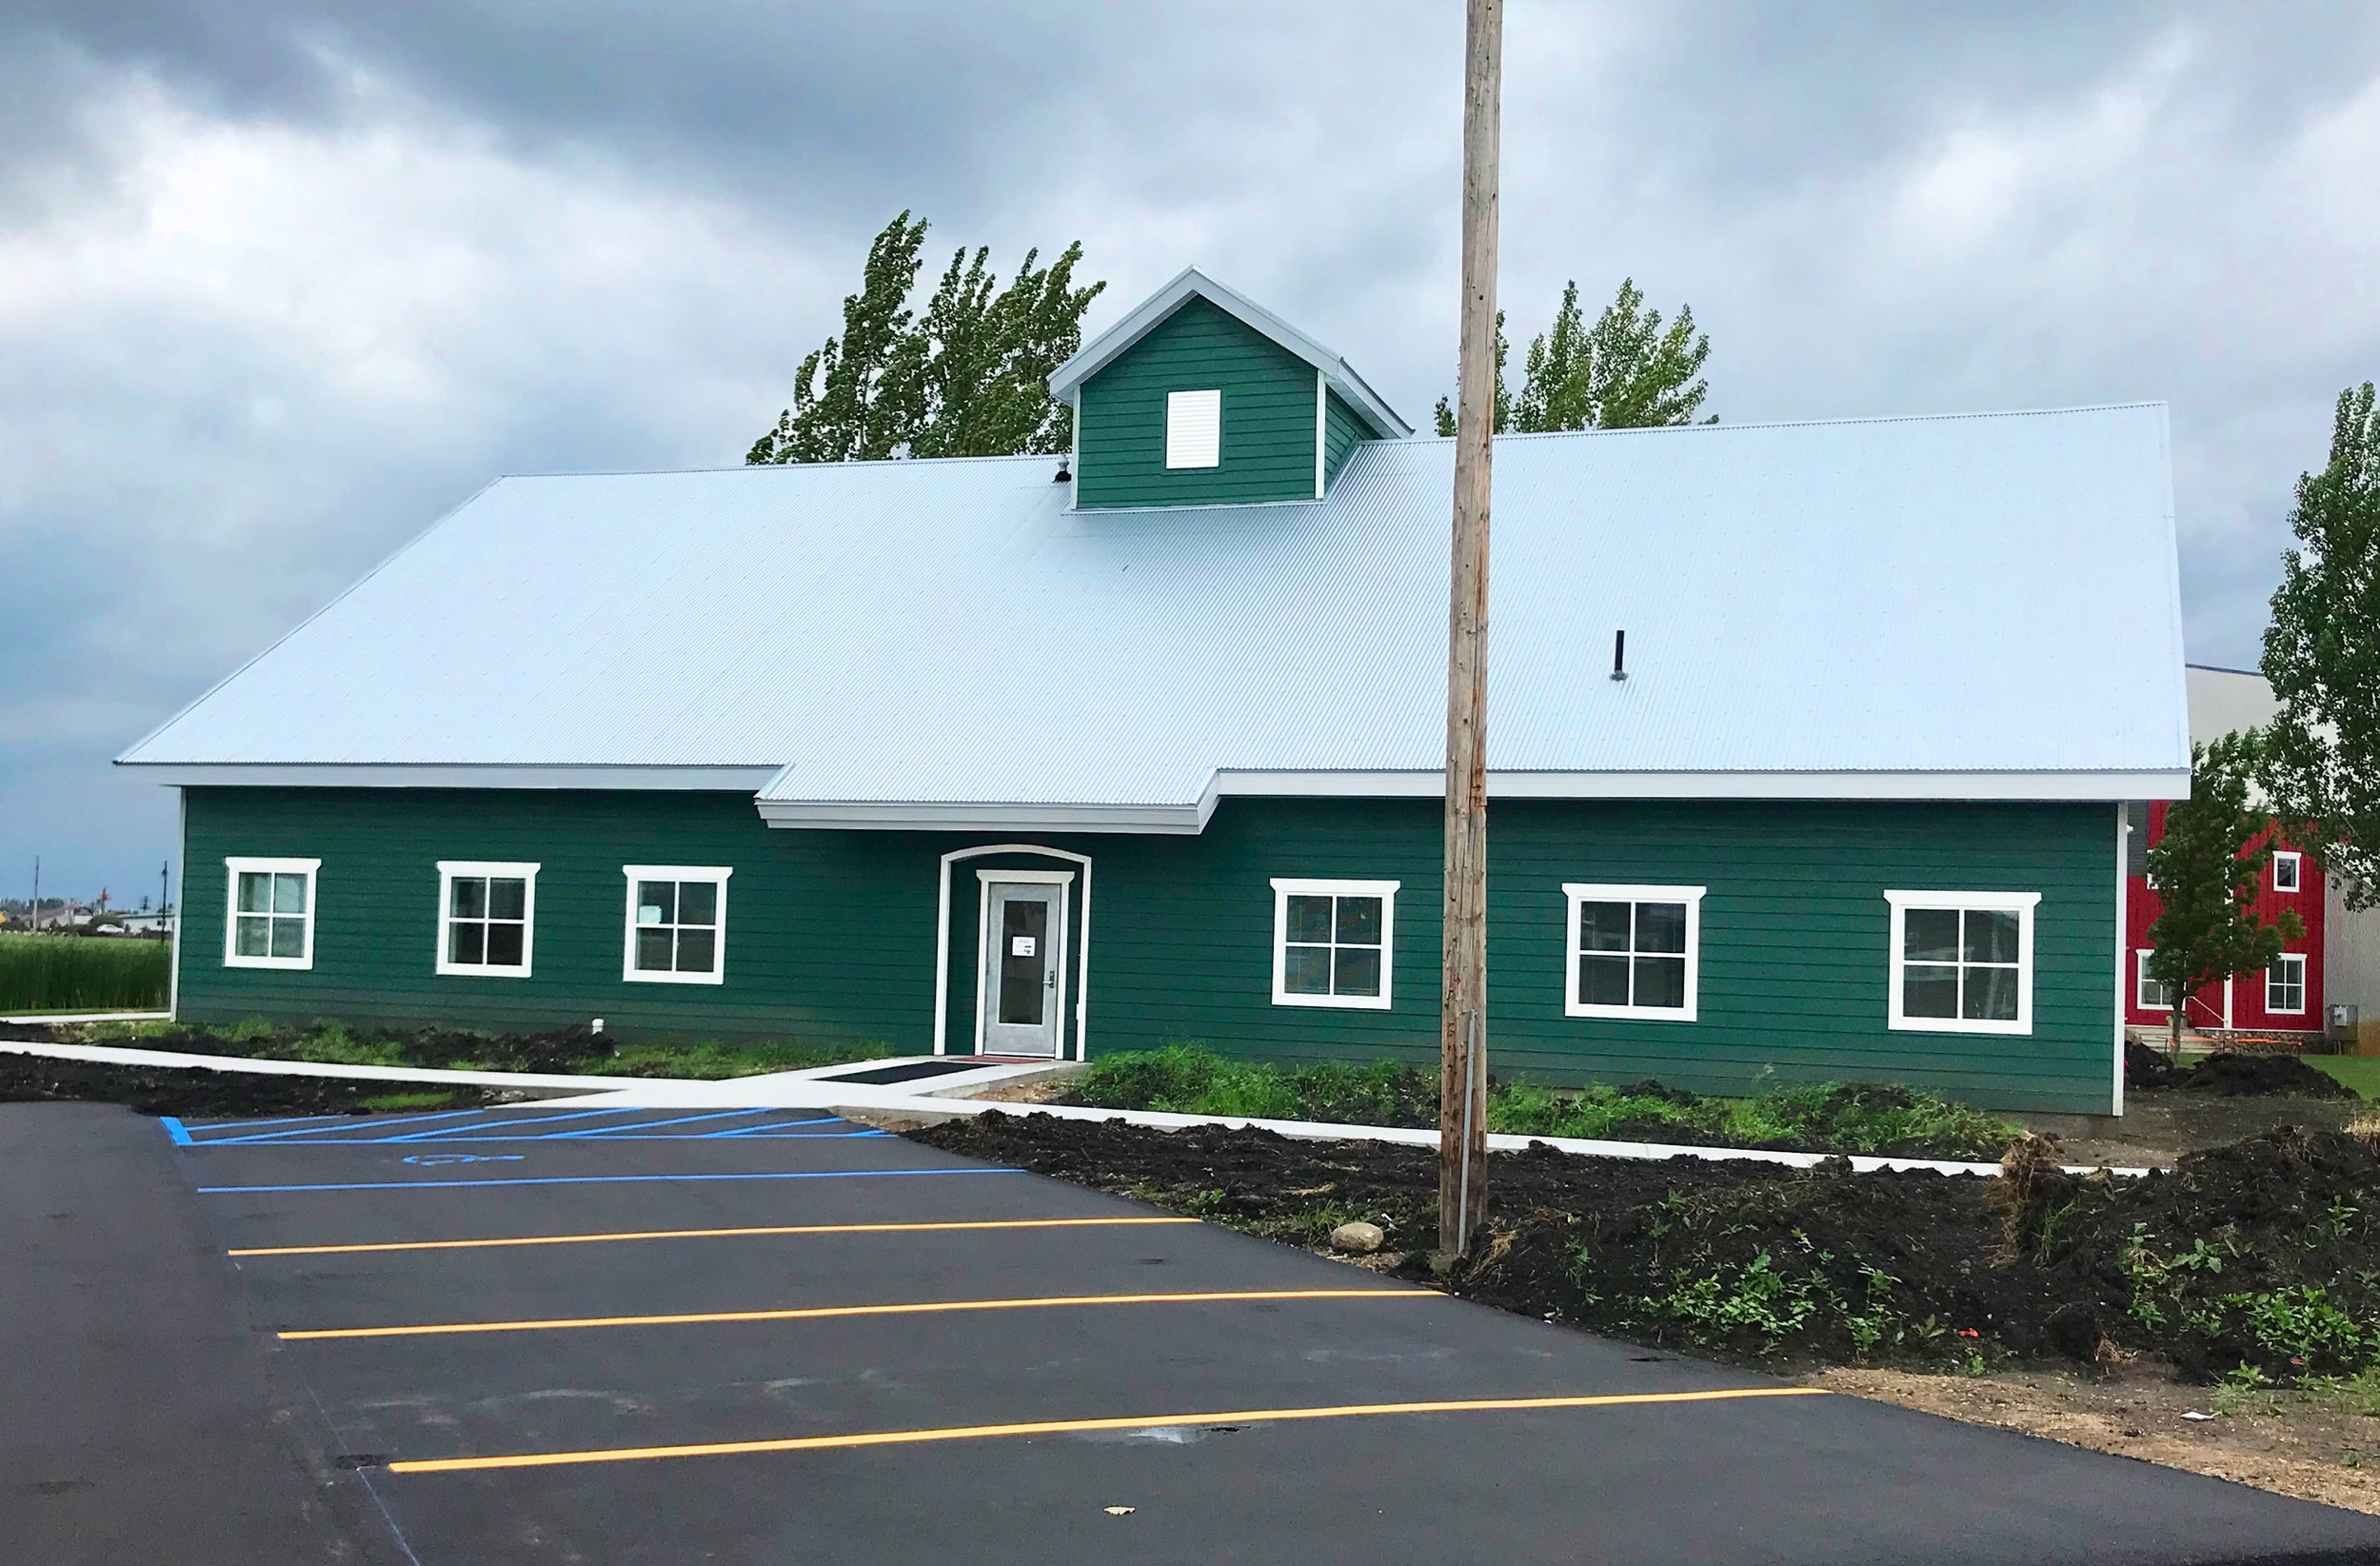 Granary - SPACE AVAILABLE: 1,534 sq. ft. (SUITE 3)MAIN FLOOR RENT: $16.50 per SF (1,065 SF)MEZZANINE RENT: $12.50 per SF (469 SF)Consisting of one main level, a mezzanine and a shared common entry space, this farm-styled office building has been designed to accommodate multiple businesses. Currently Suites 1 and 2 have been reserved by North Dakota Trade Office and Northarvest Bean Growers. The available office space is currently unfinished as it is to be fit up for the next tenant.